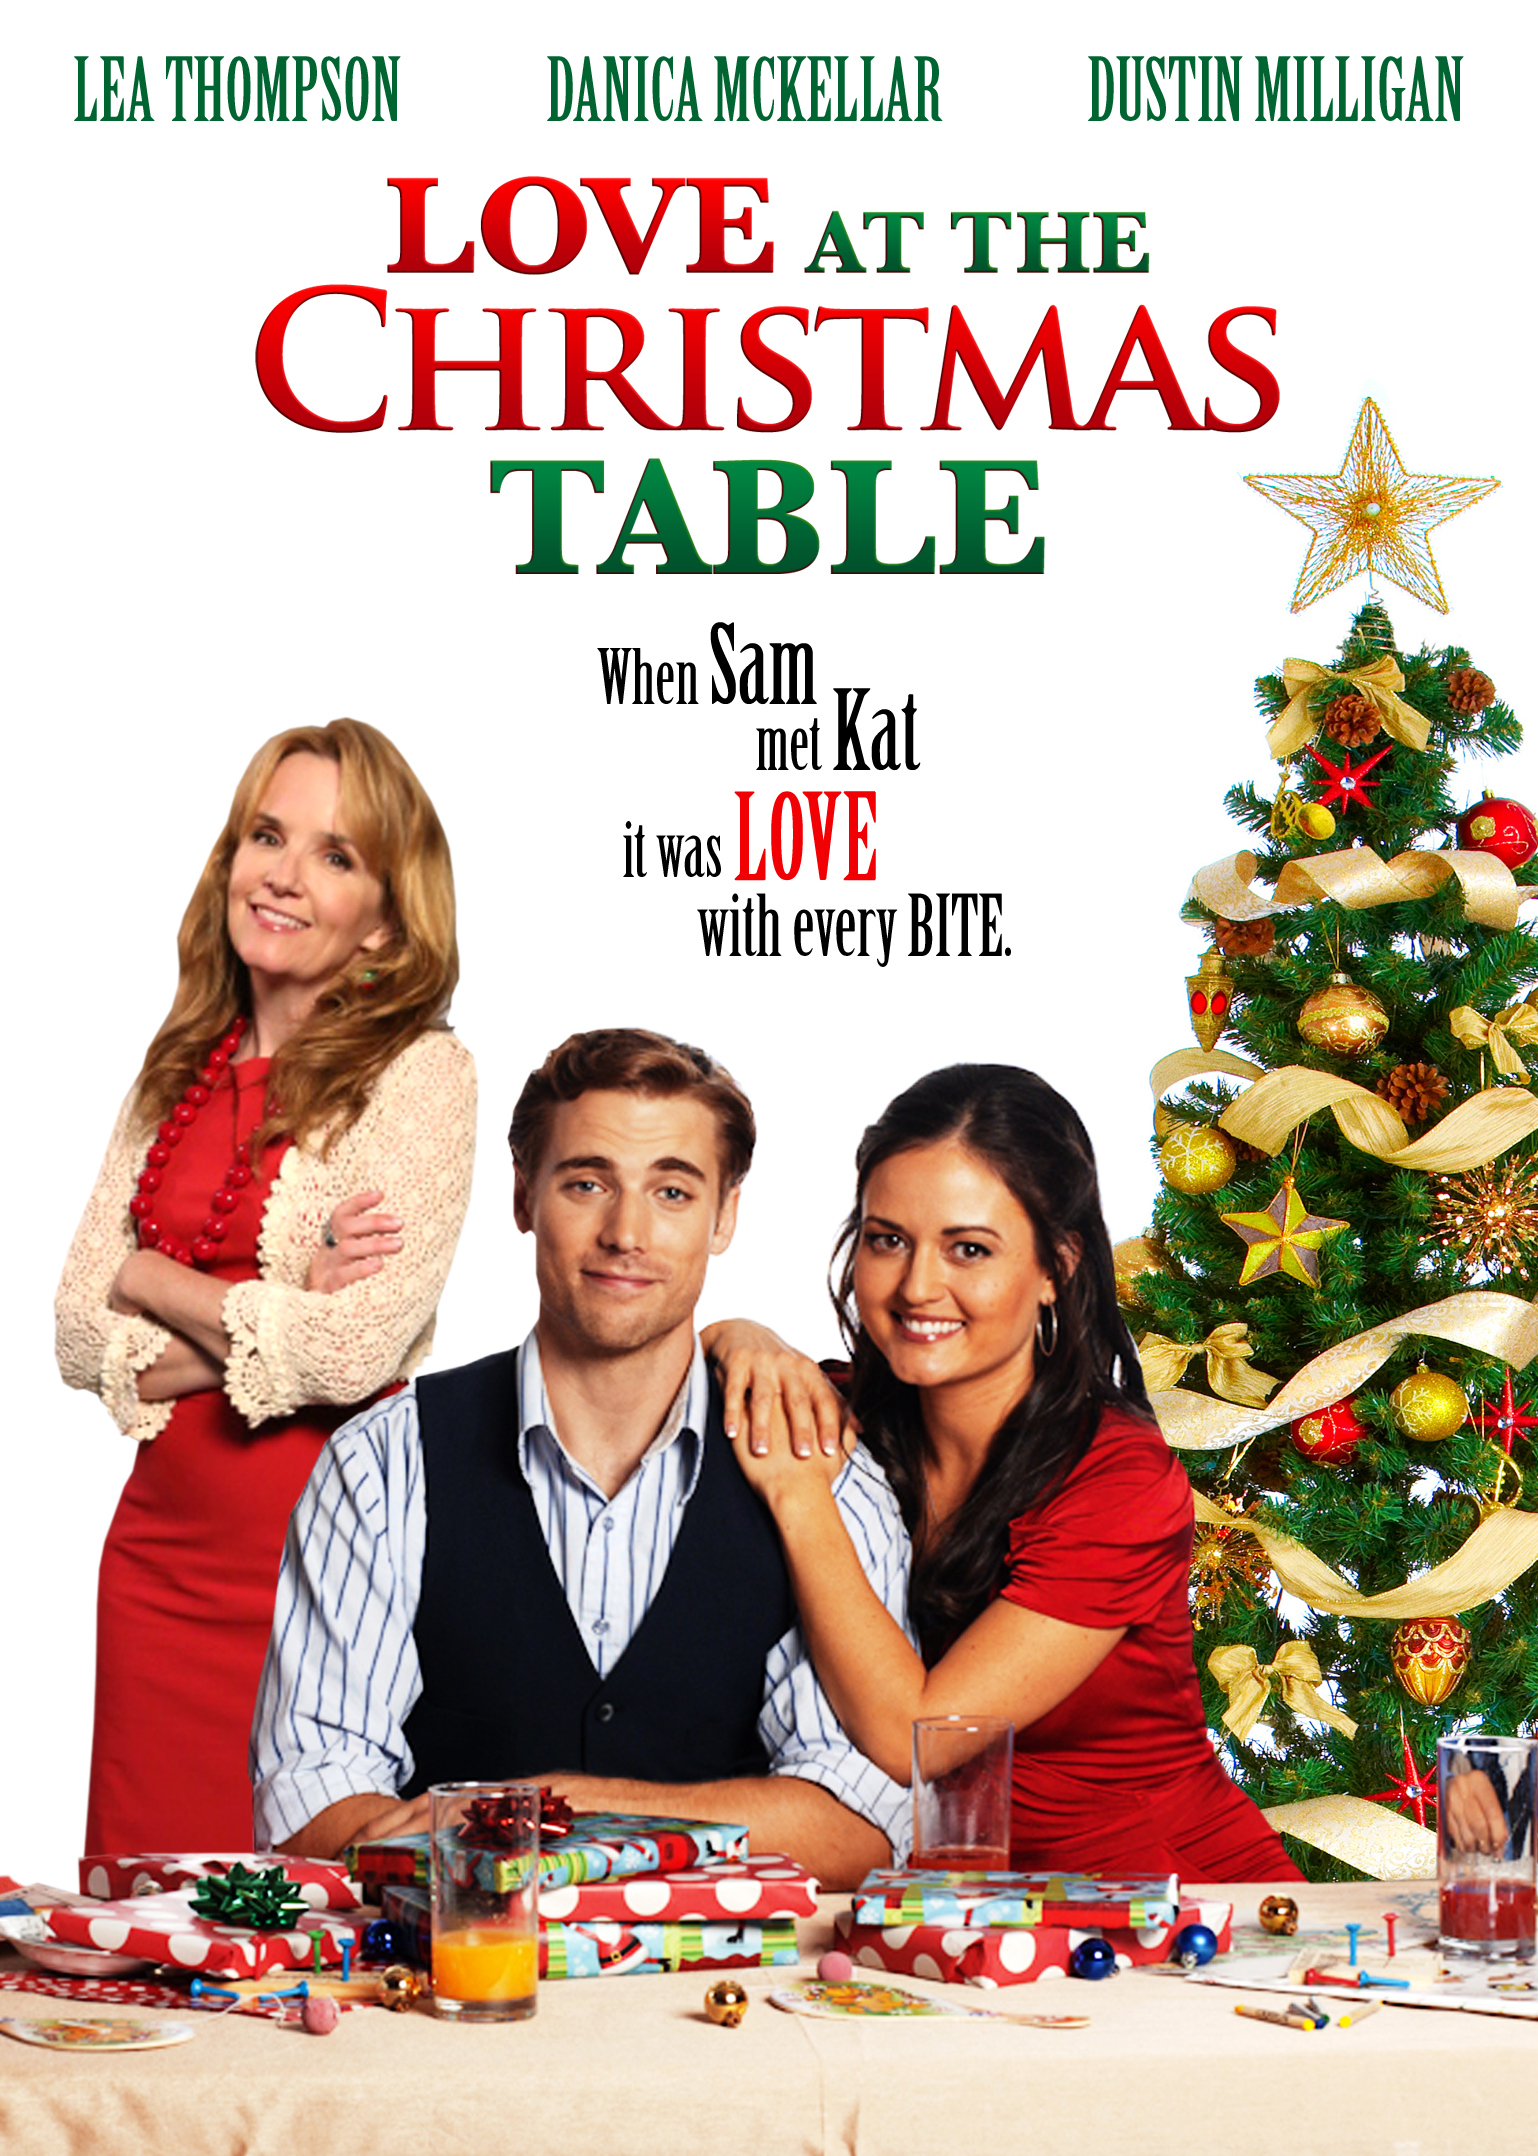 Cast Of A Christmas Kiss.Love At The Christmas Table Tv Movie 2012 Imdb